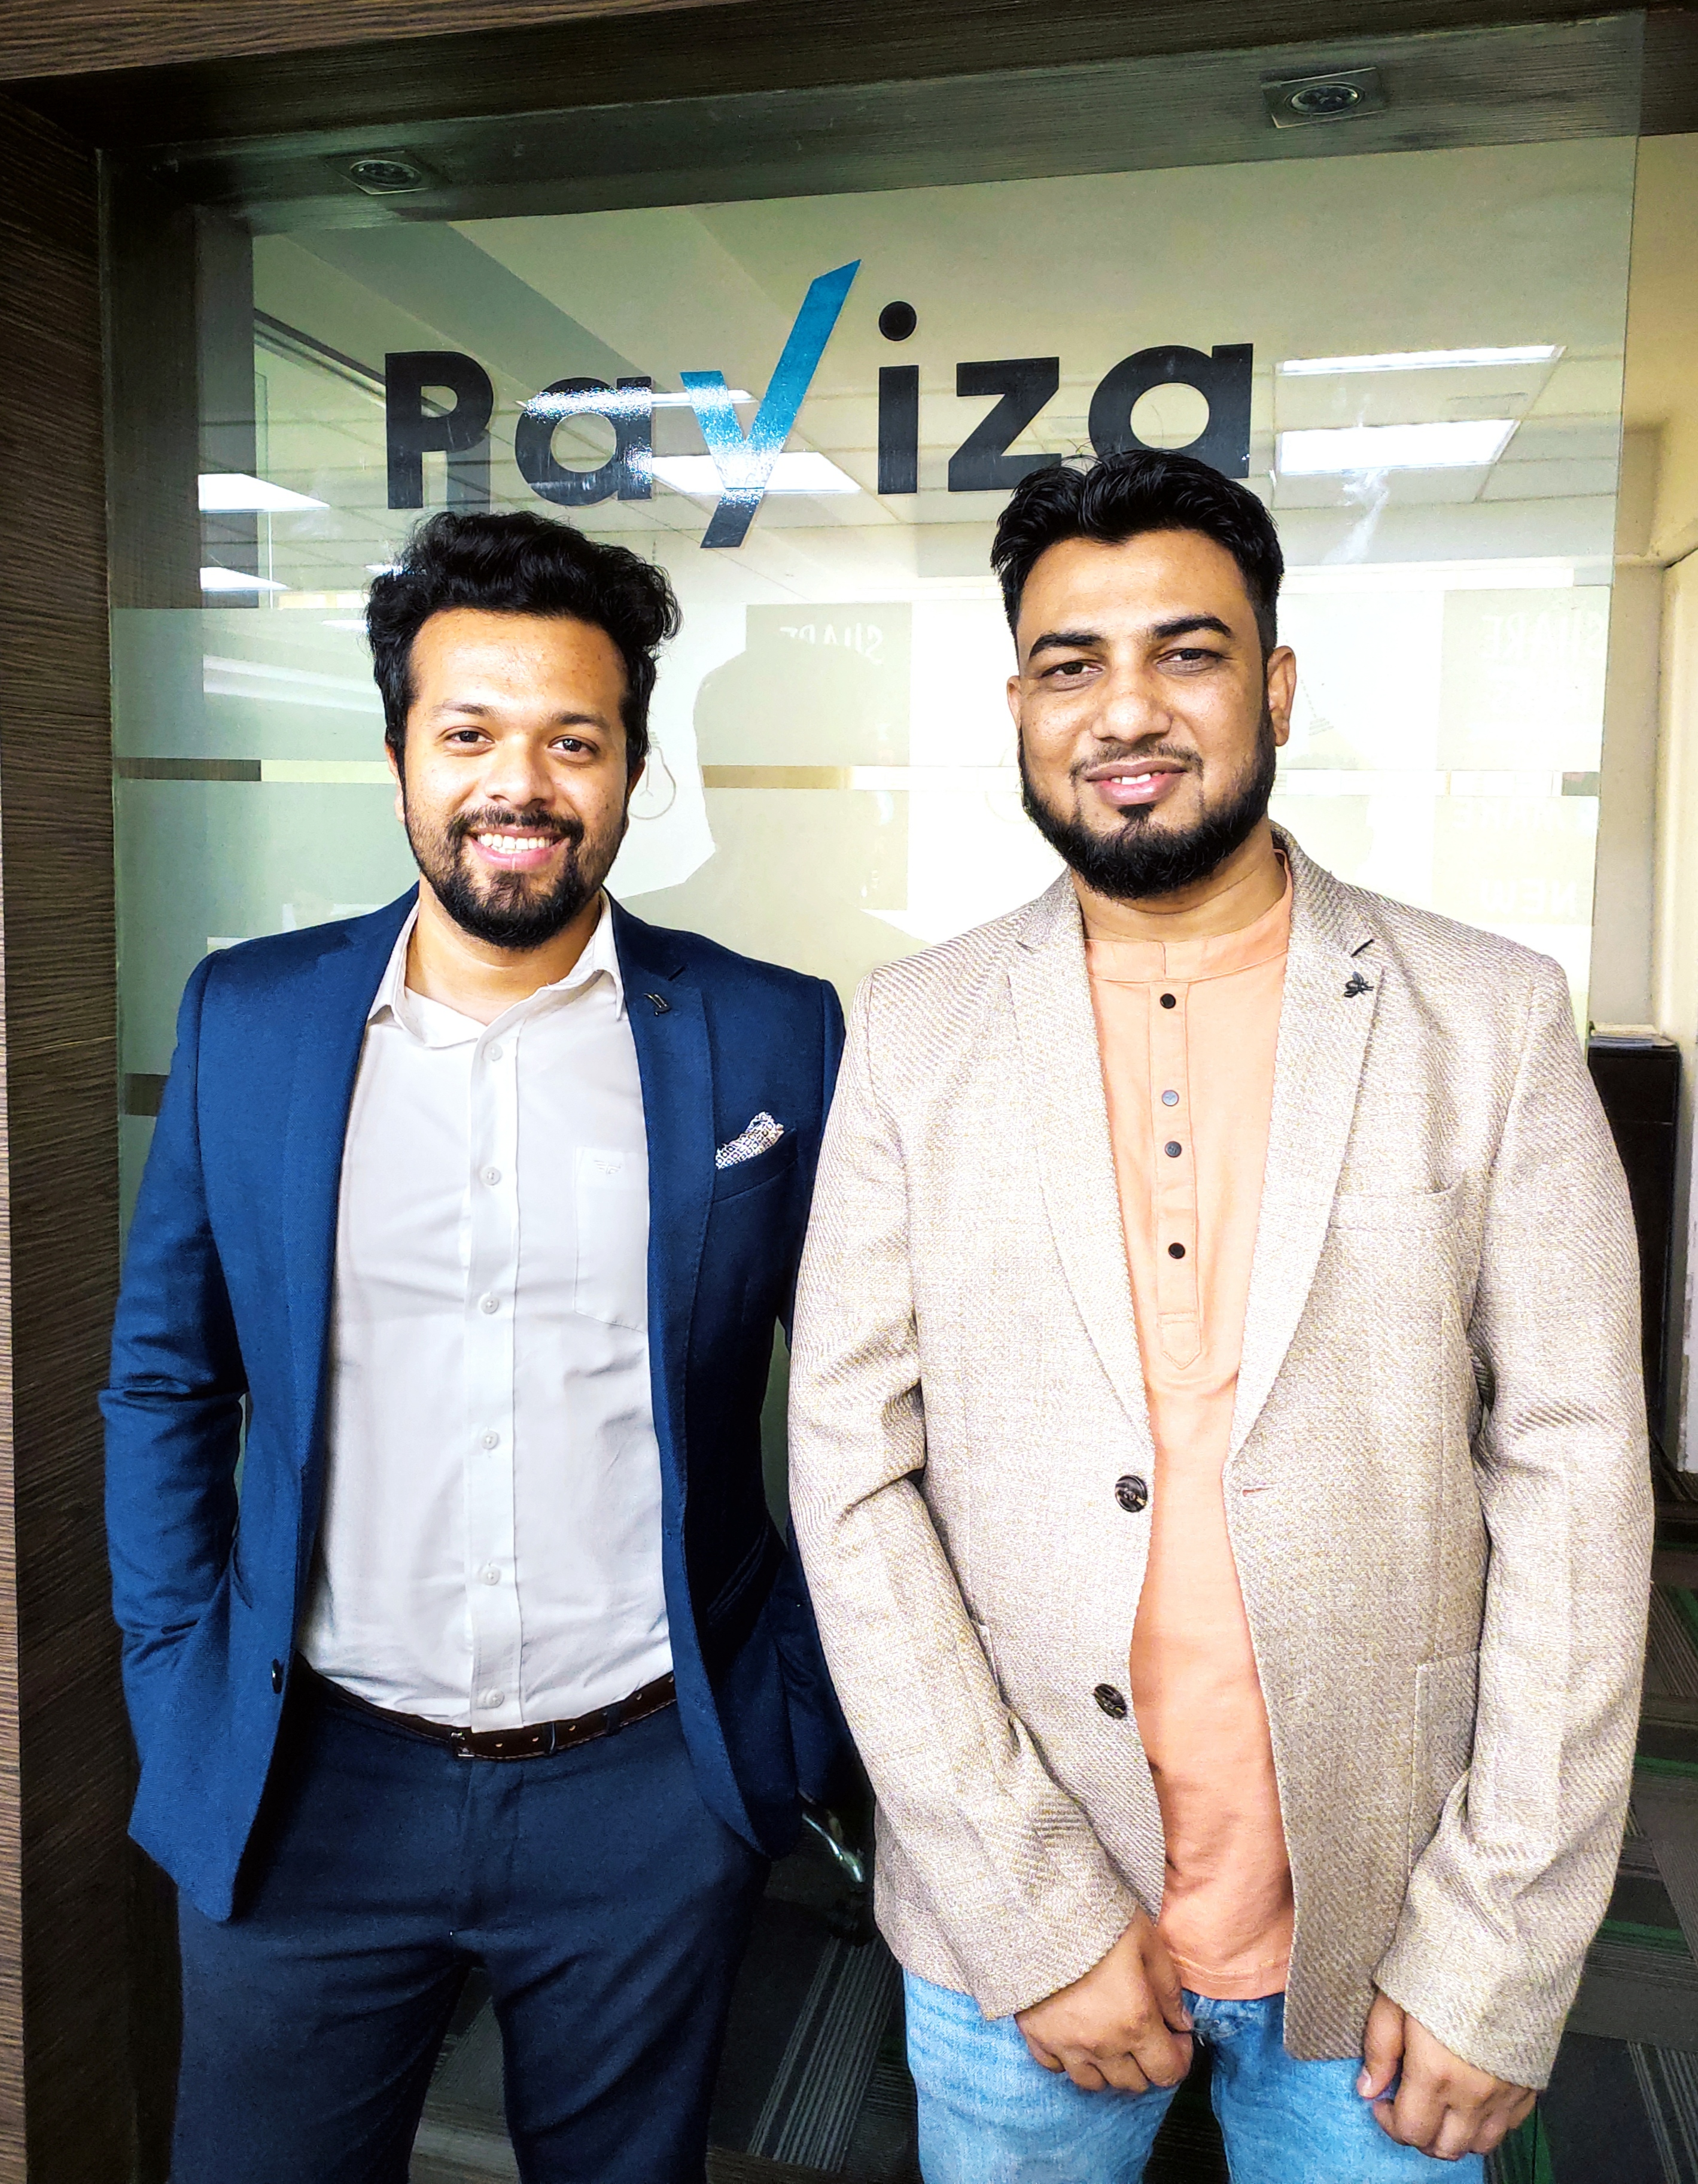 Payiza is changing online payments industry using Blockchain: Bibin Babu, Co-Founder